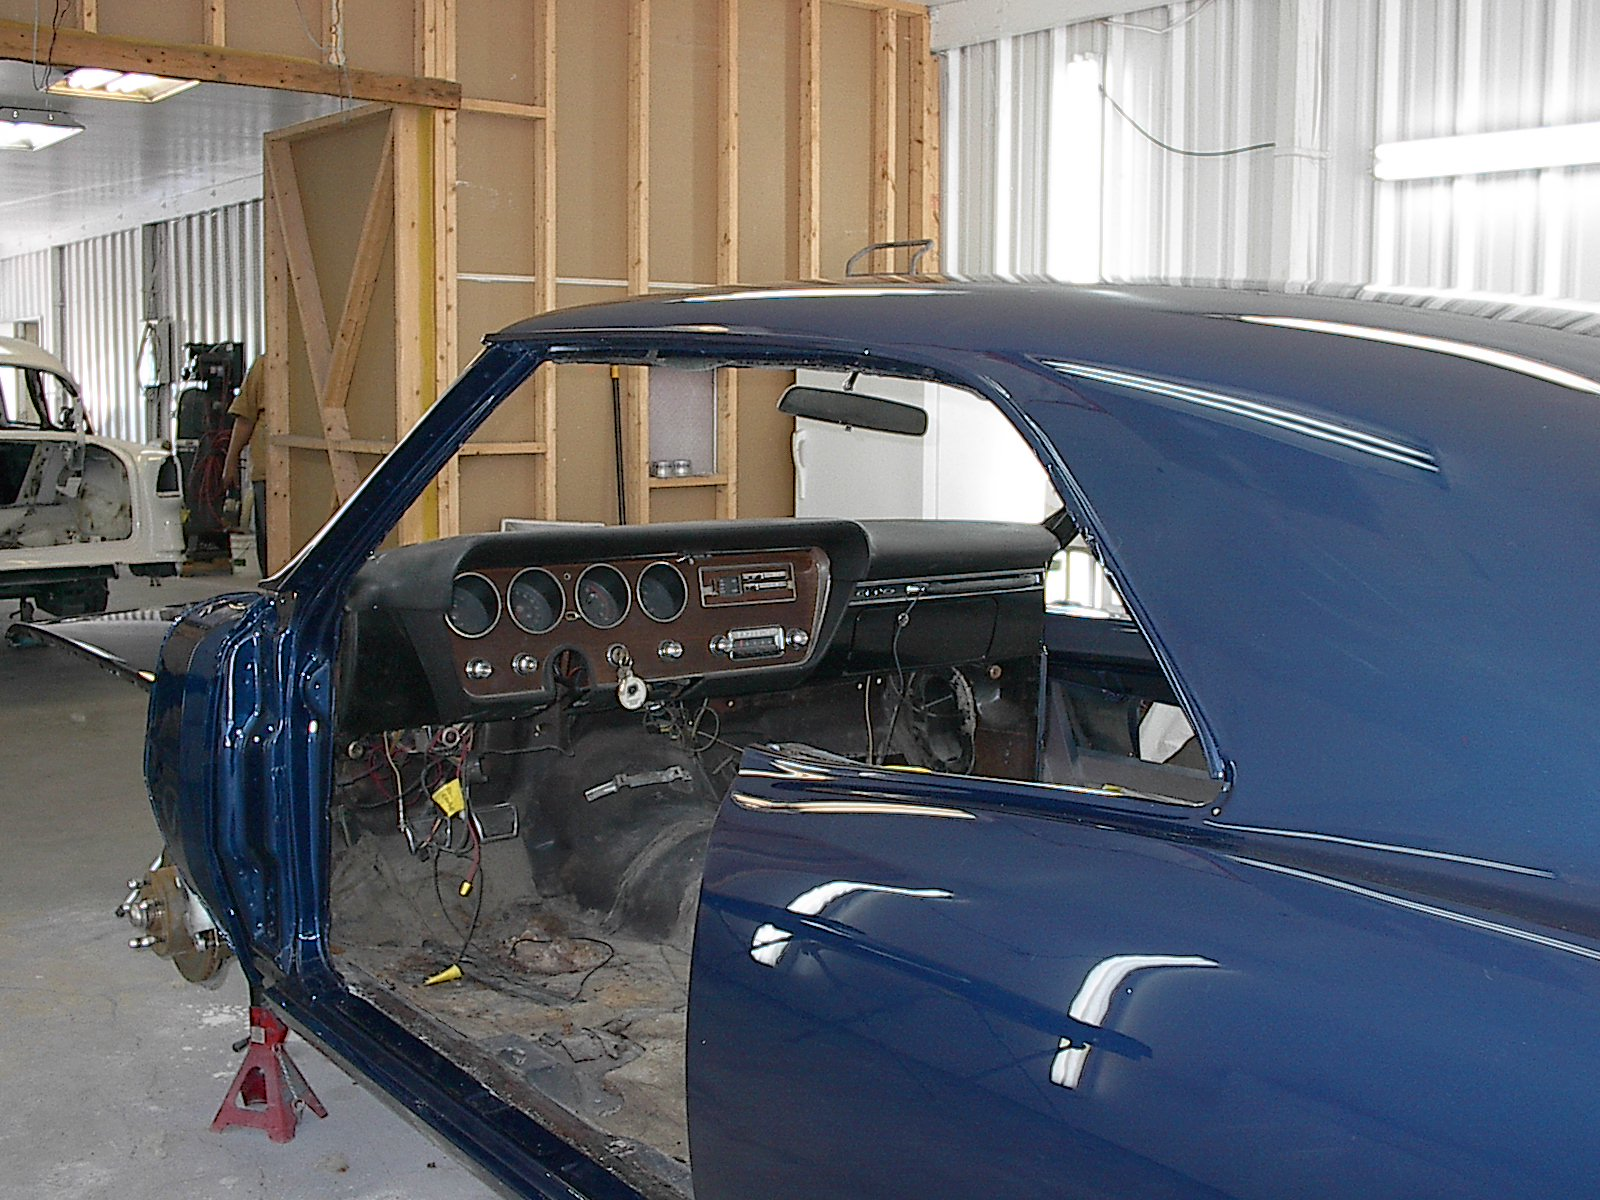 Reading Date Code - Engine Id For '66 389-restoration-1966-gto-5-26-2010-007.jpg